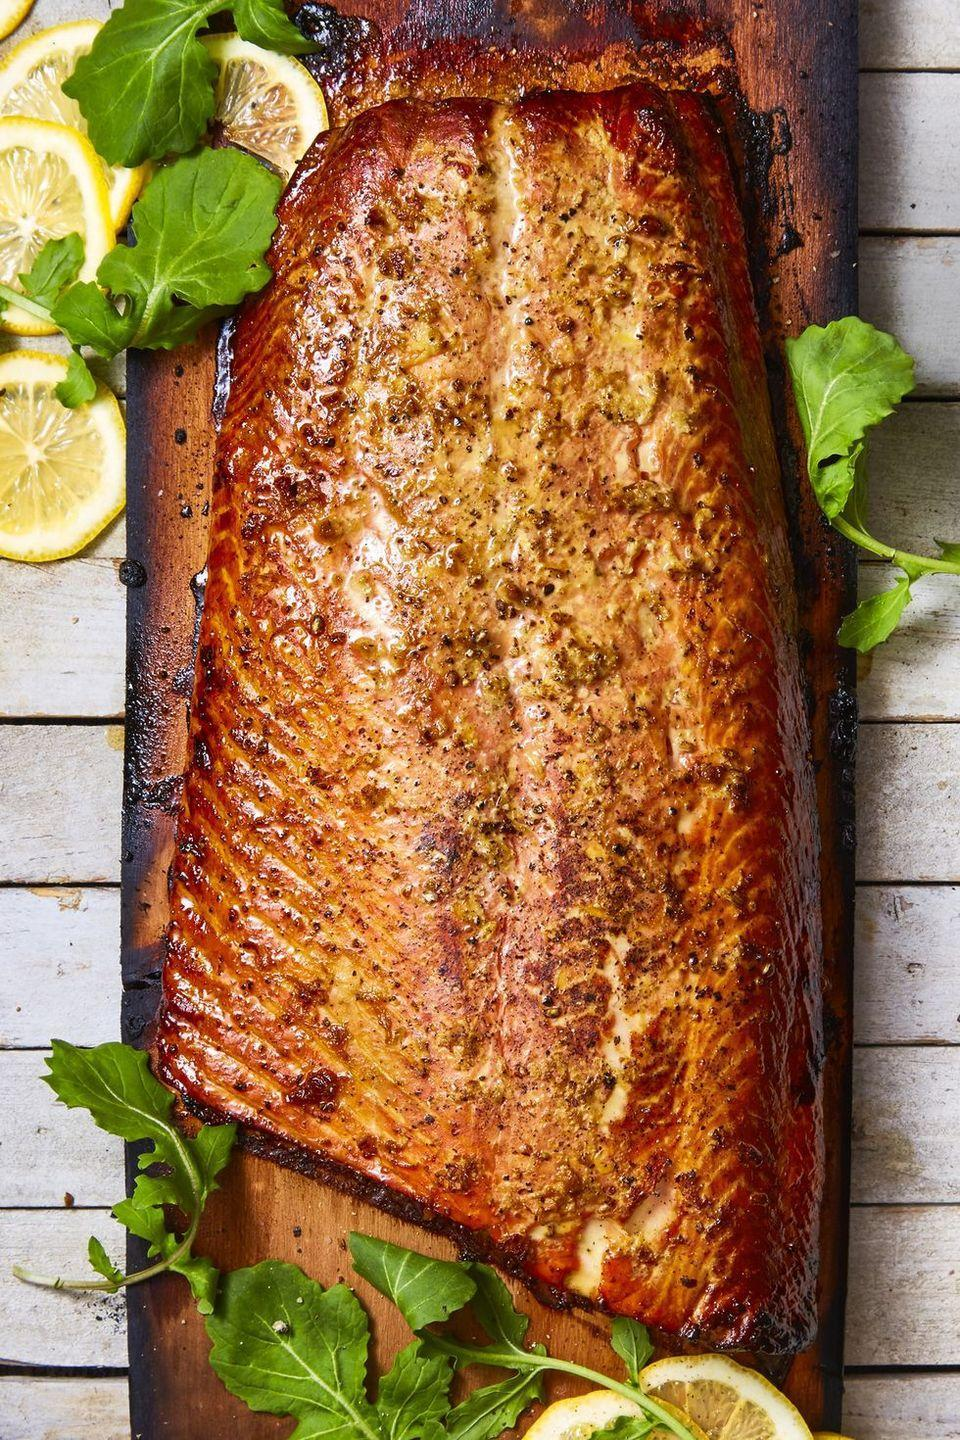 """<p>With it's sweet and spicy flavor, you get the best of both worlds with this salmon dinner.</p><p><em><em><a href=""""https://www.goodhousekeeping.com/food-recipes/a44681/honey-ginger-cedar-plank-salmon-recipe/"""" rel=""""nofollow noopener"""" target=""""_blank"""" data-ylk=""""slk:Get the recipe for Honey-Ginger Cedar Plank Salmon »"""" class=""""link rapid-noclick-resp"""">Get the recipe for Honey-Ginger Cedar Plank Salmon »</a></em></em></p>"""